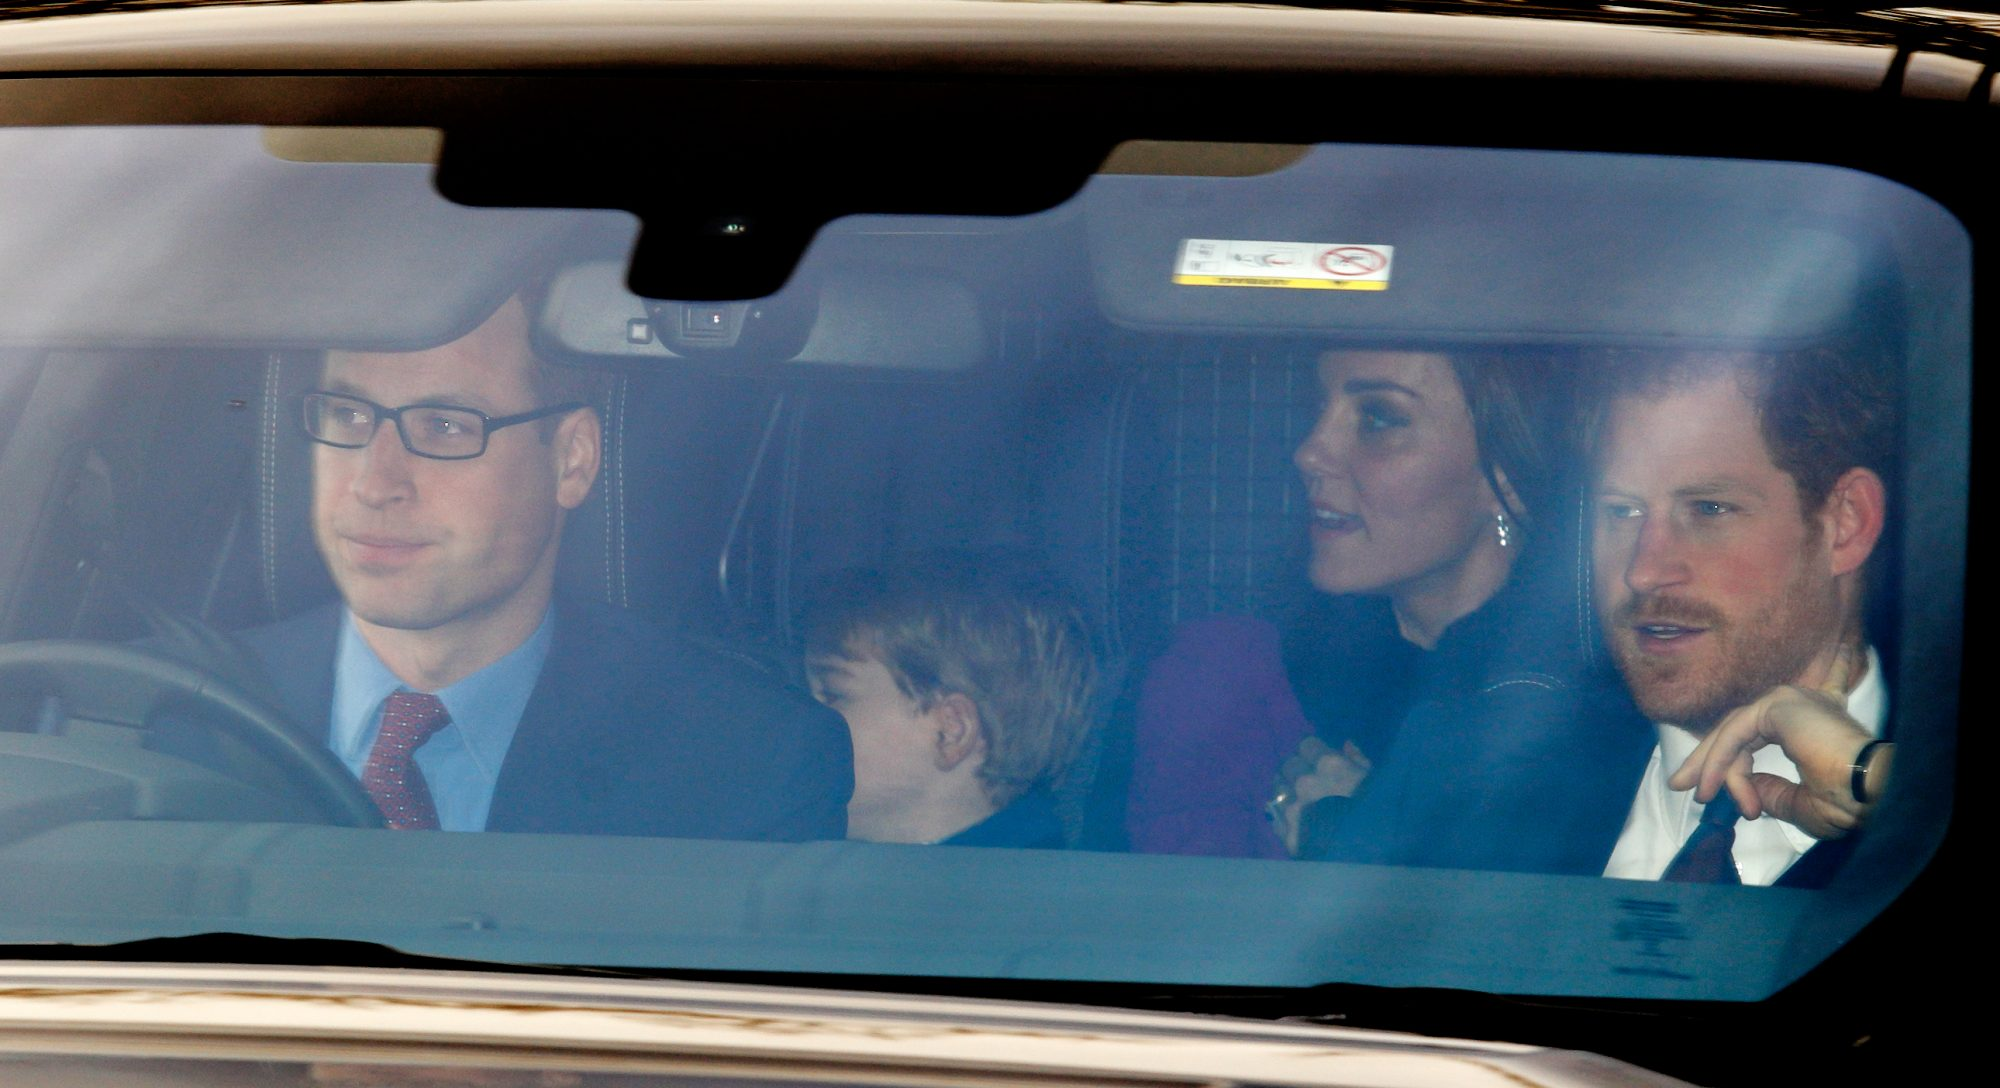 kate-harry-william-driving.jpg